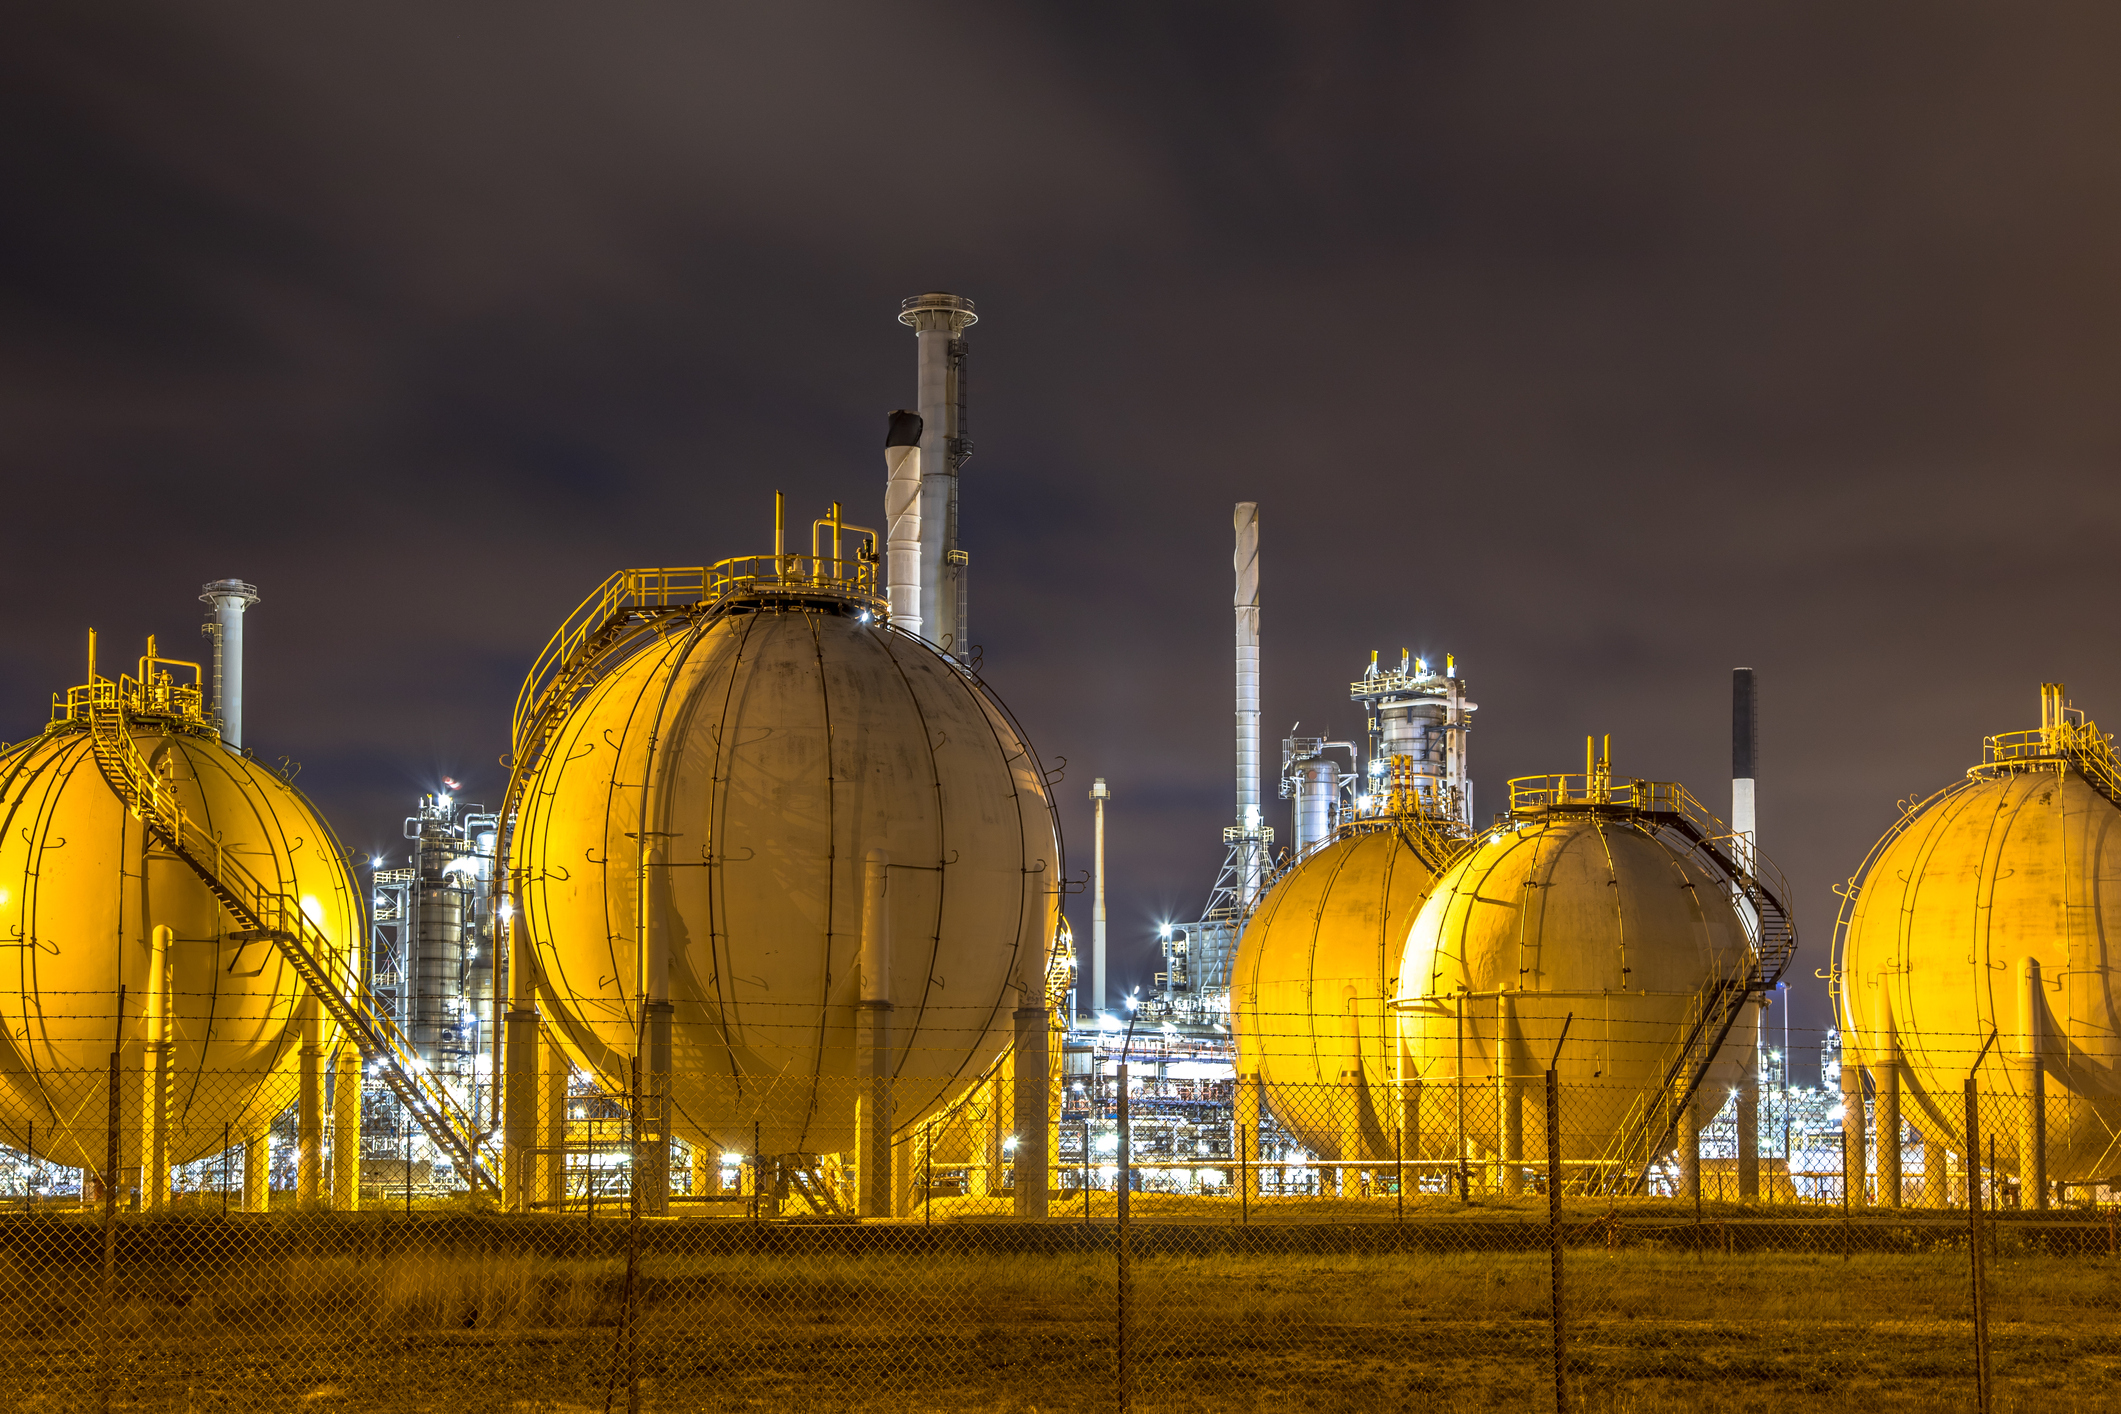 Liquid Natural Gas globe shape containers